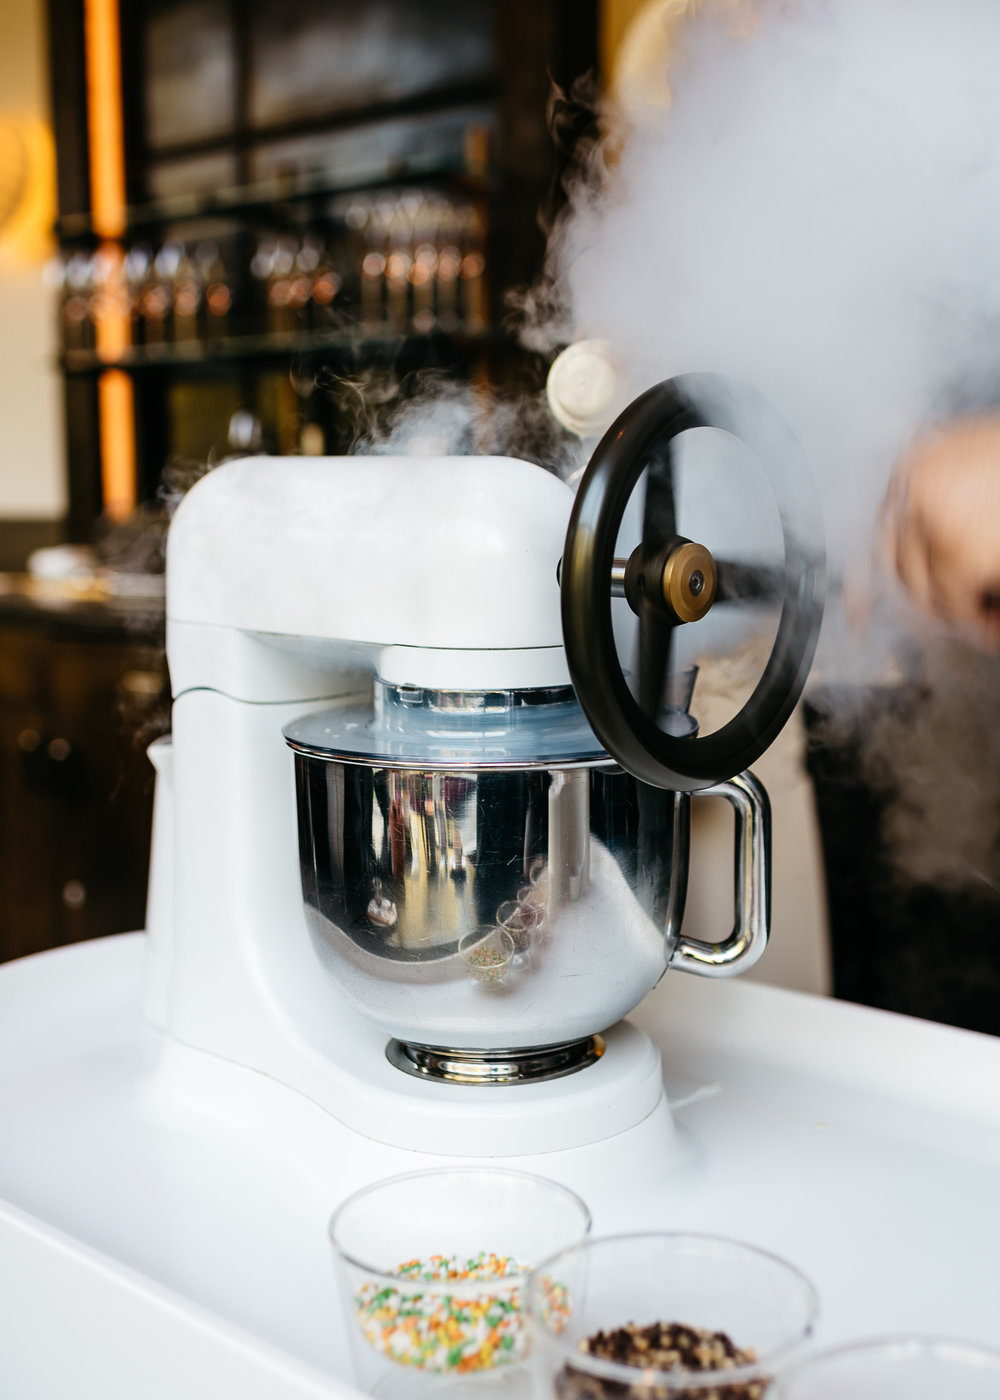 Liquid nitrogen vanilla ice cream made to order at Dinner by Heston Blumenthal